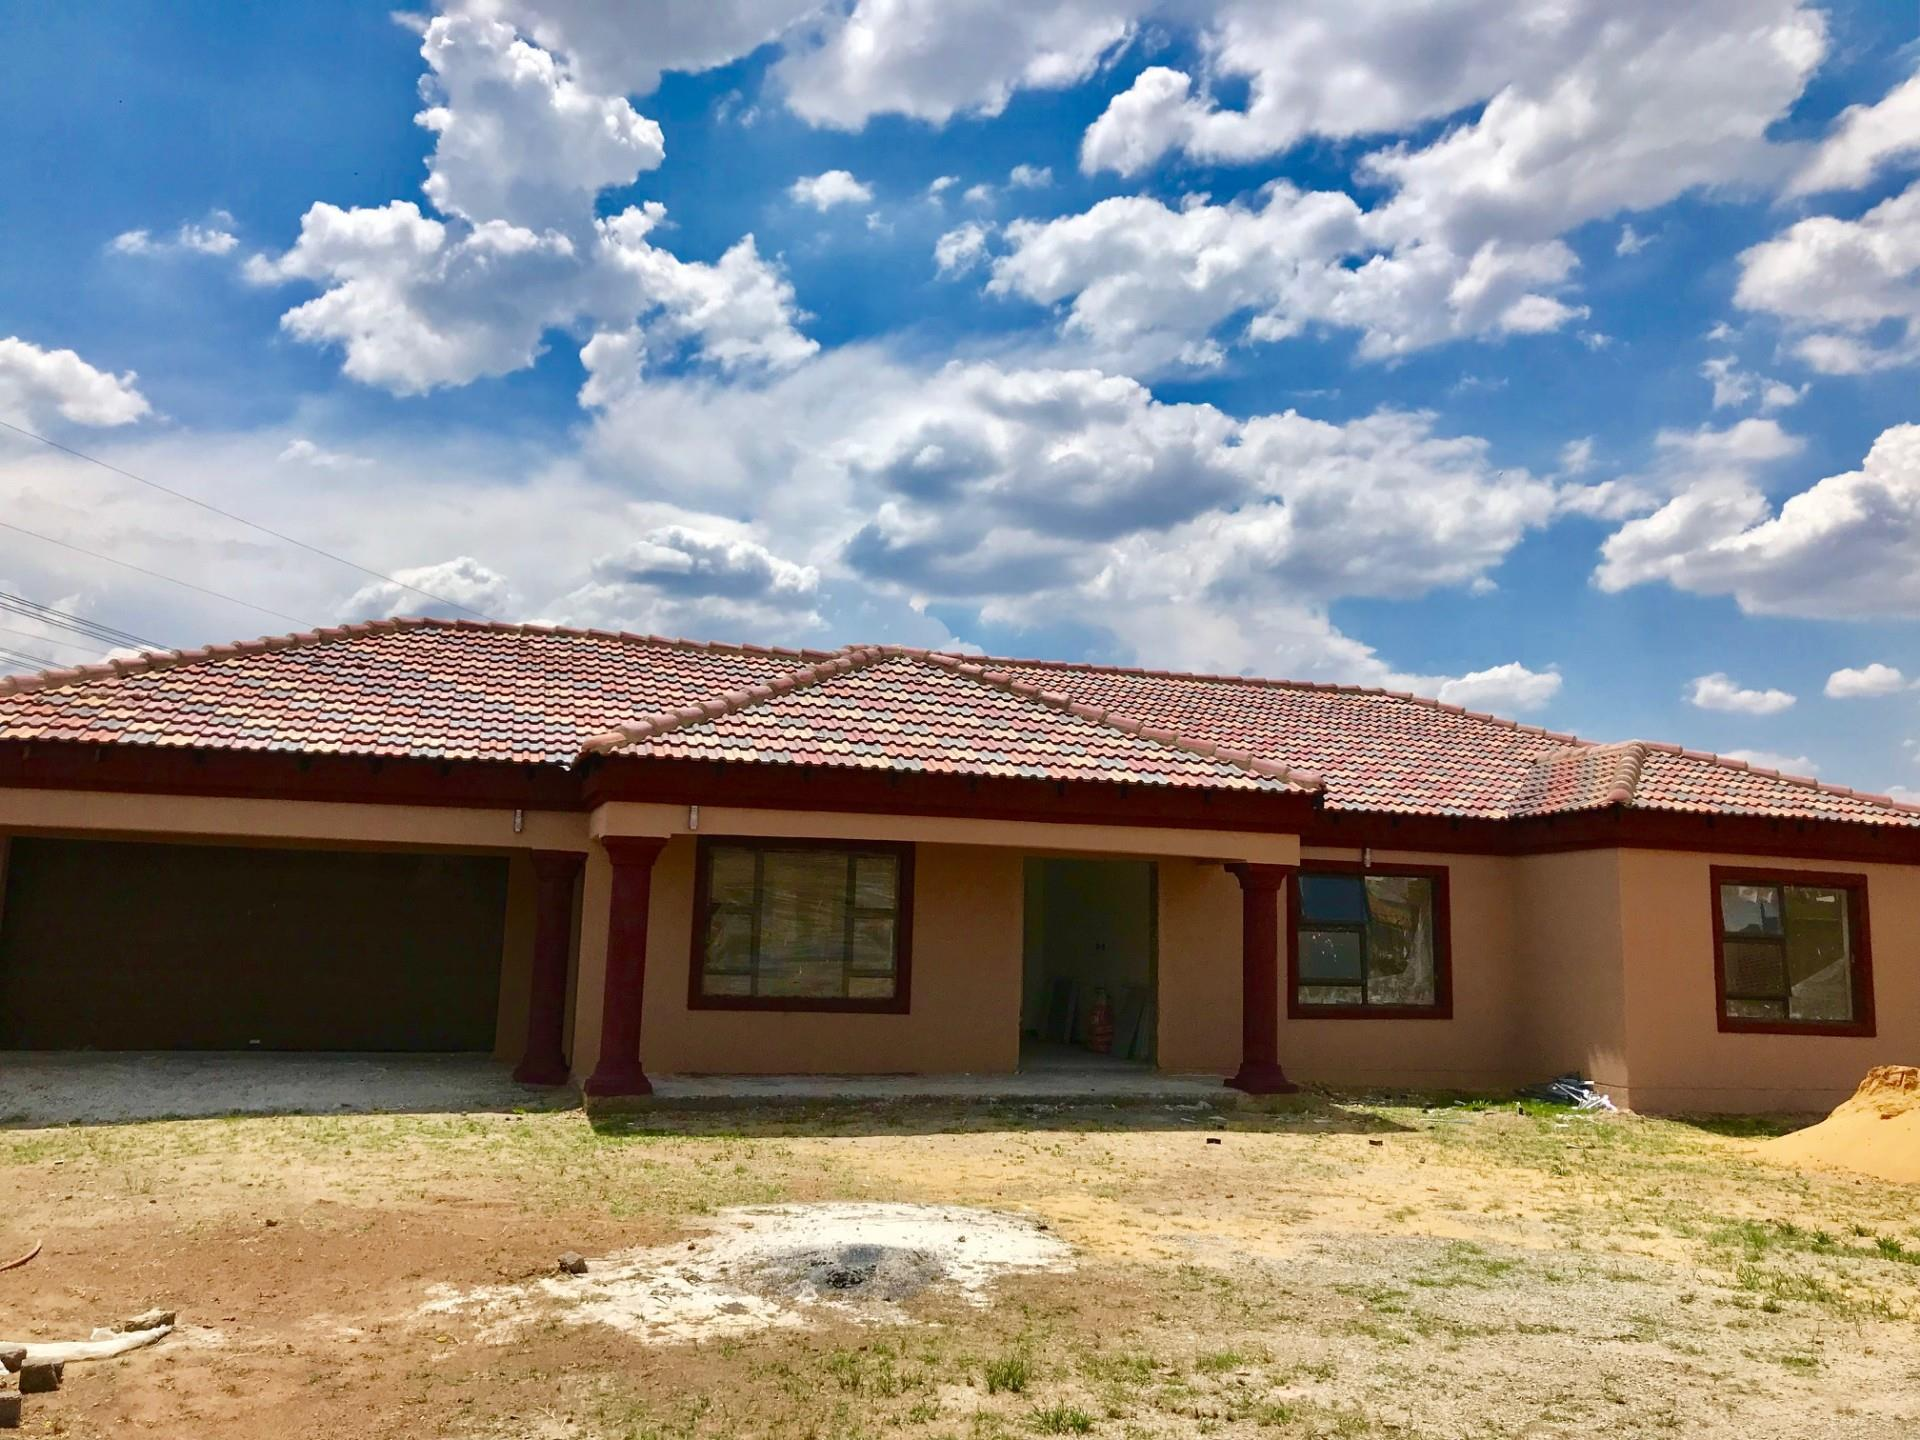 3 Bedroom House For Sale in Three Rivers East